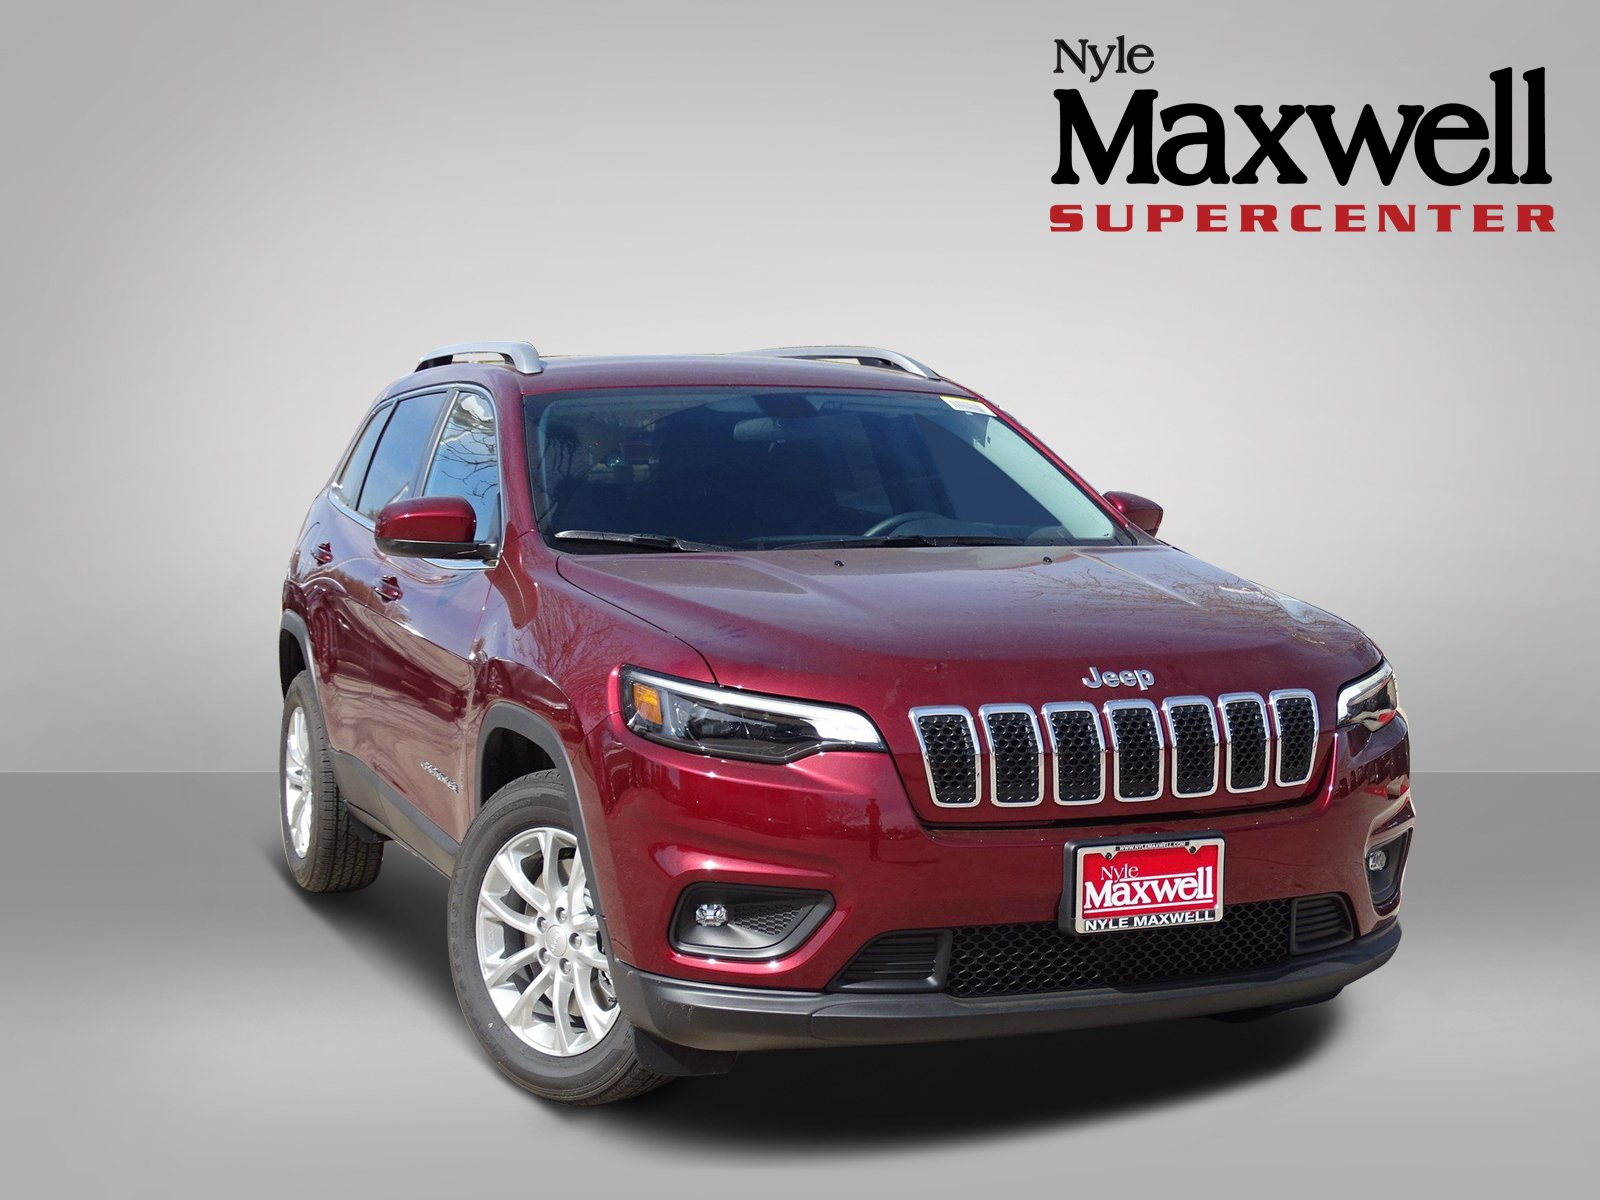 cc maxwell cherokee austin for sale nyle in jeep tx grand